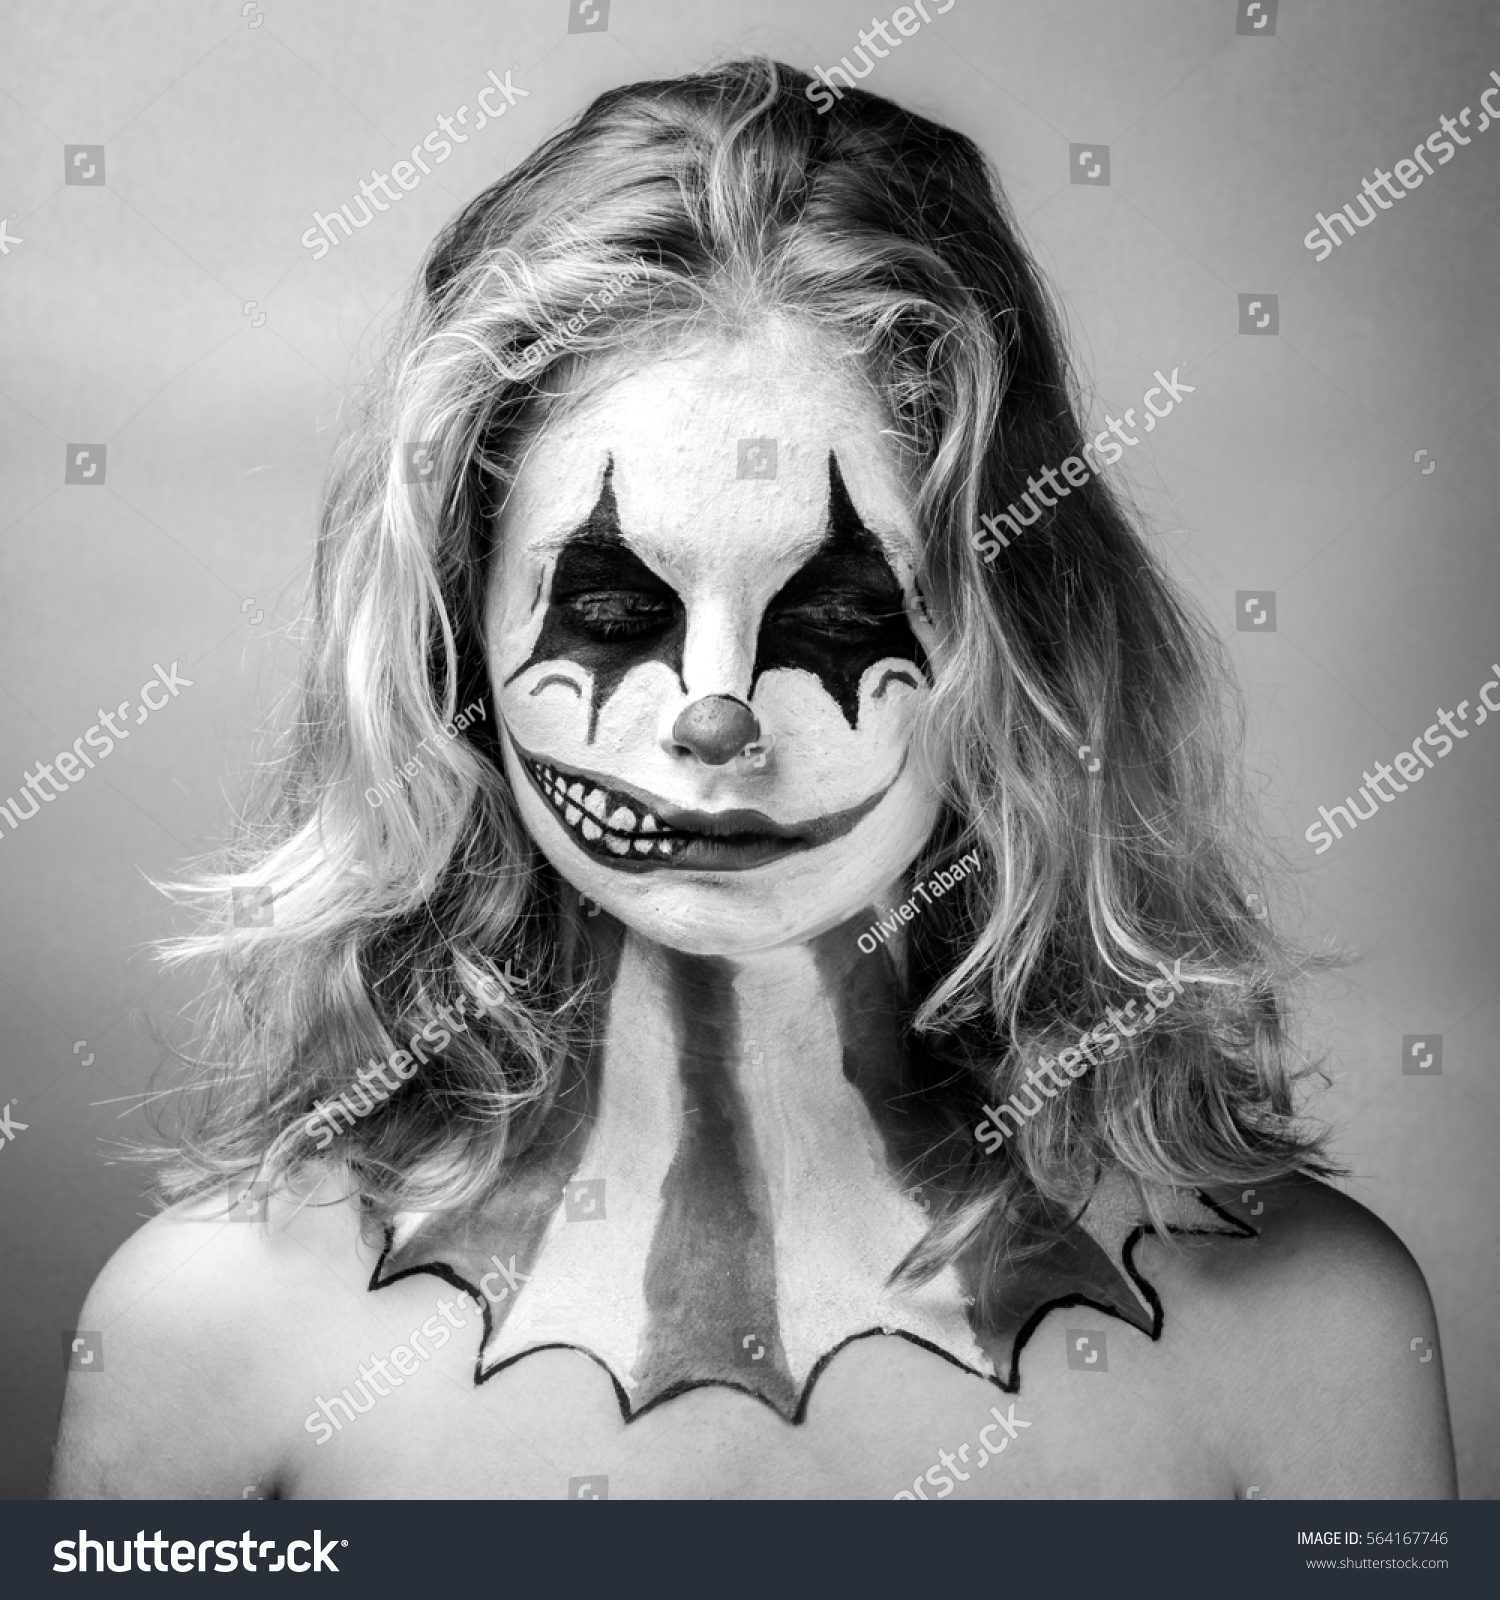 Portrait of a blond girl made up in joker with a fake smile on half of